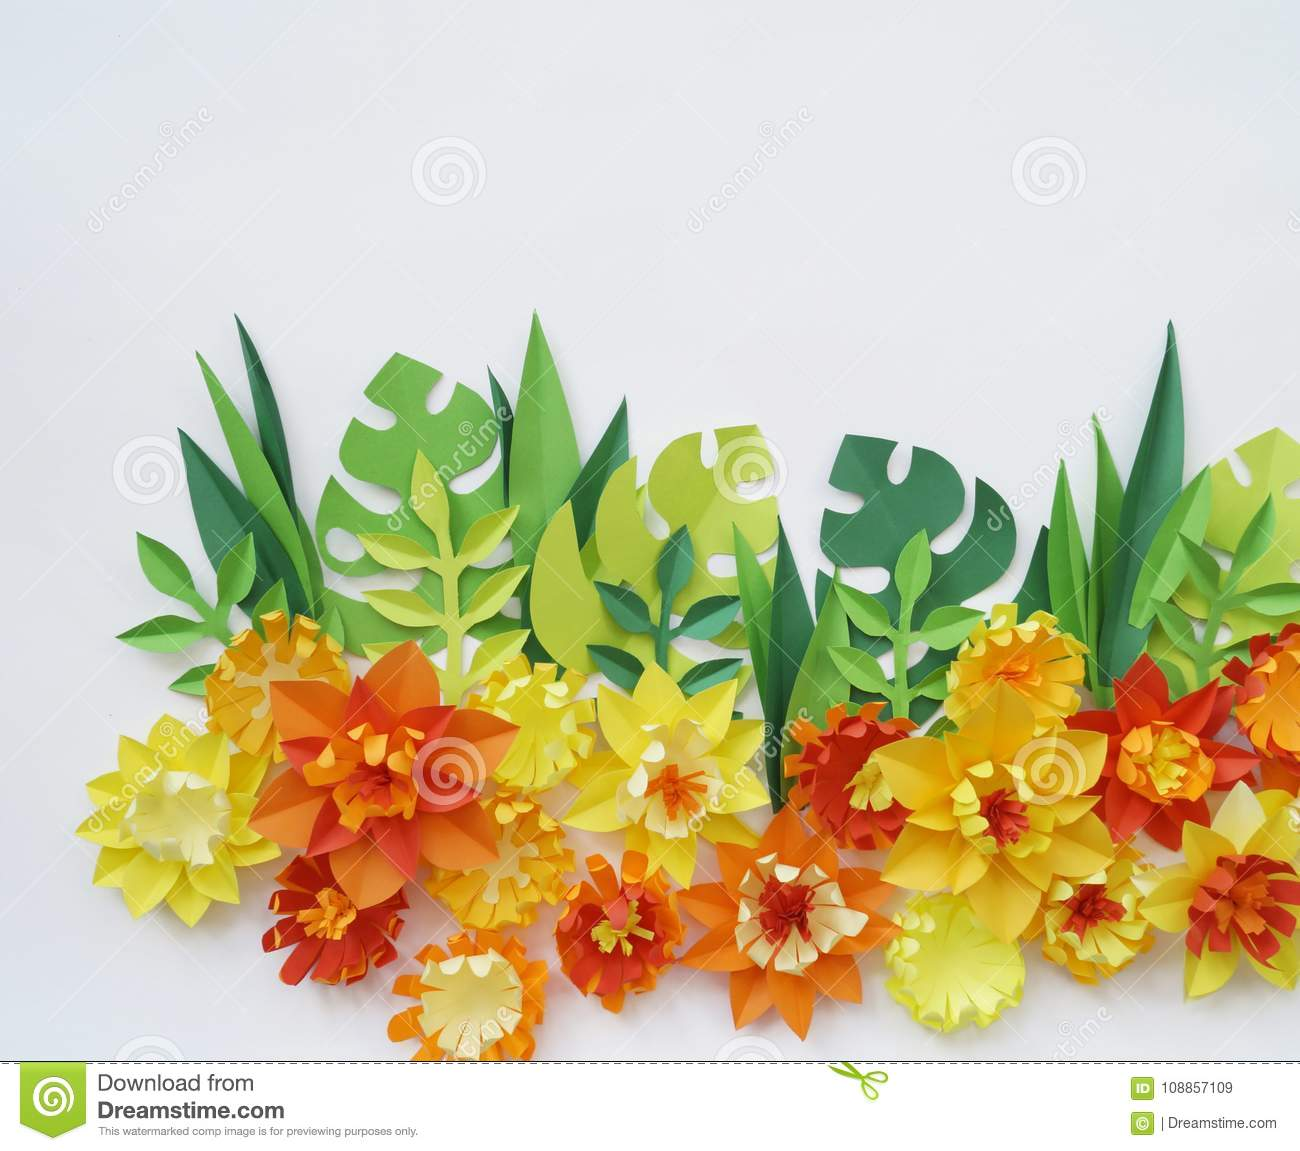 Floral arrangement of paper flowers on a white backgrounde view download comp mightylinksfo